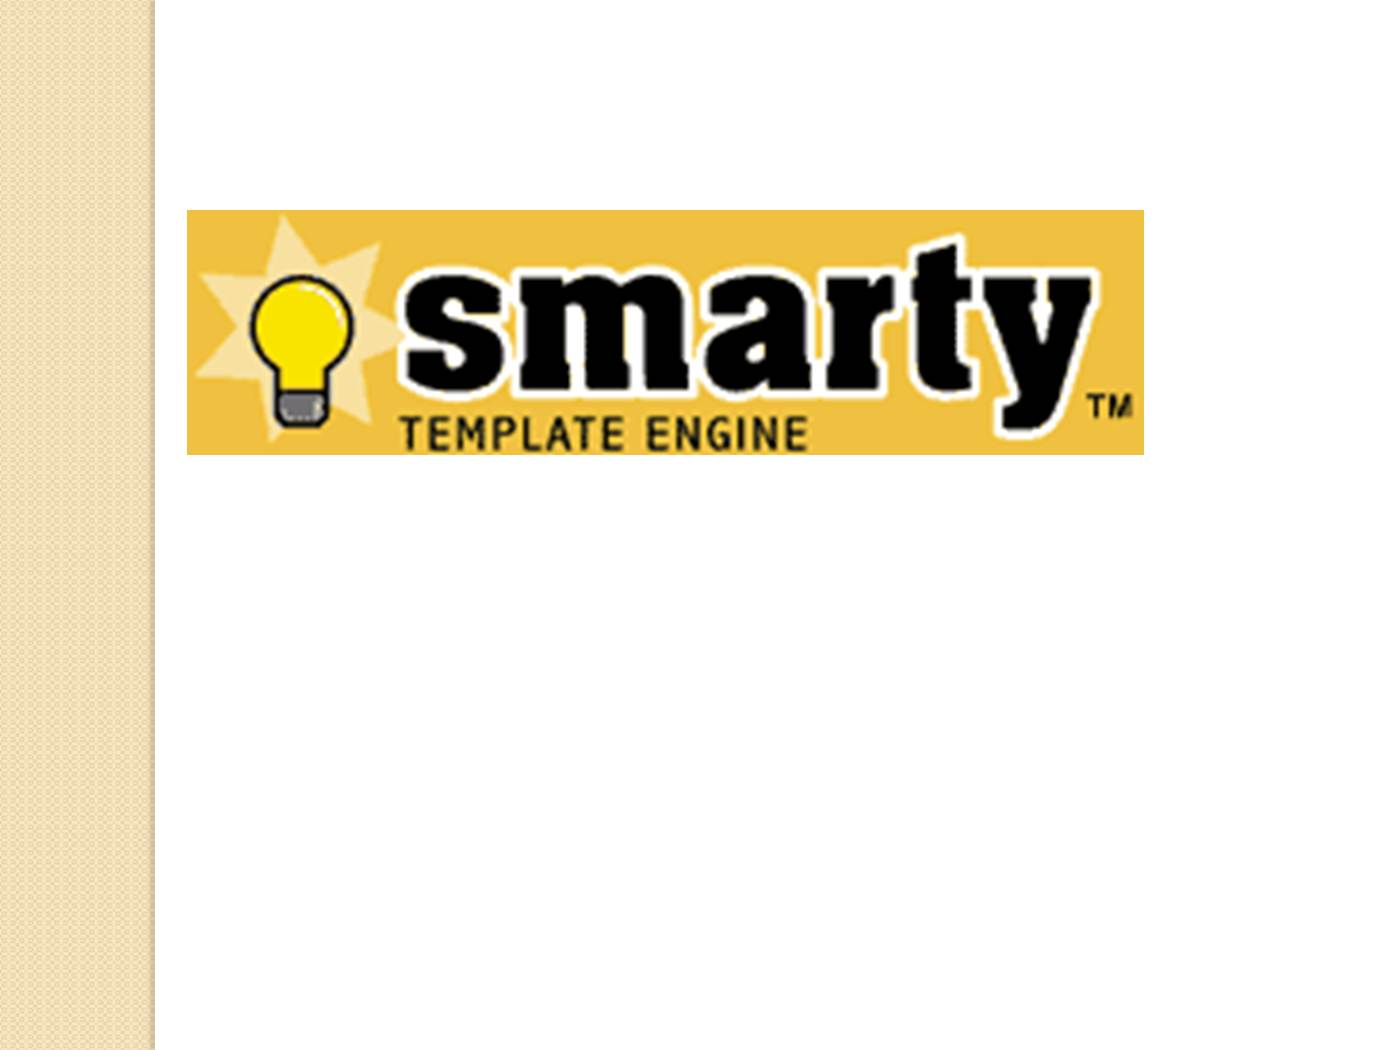 Assign in smarty